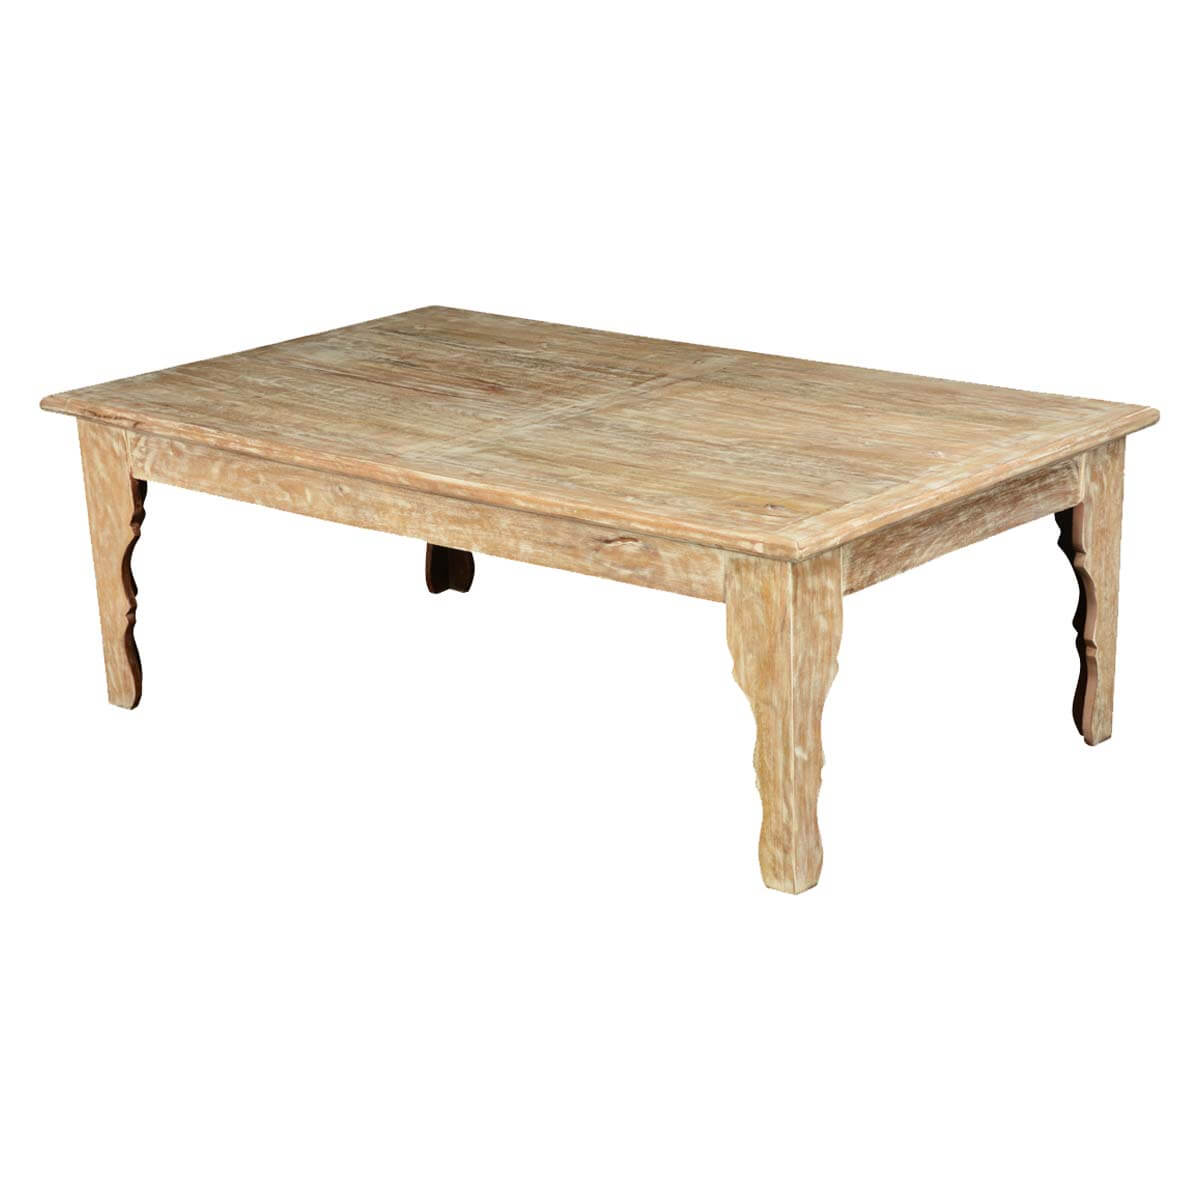 Coffee Table White Wood Winter White Mango Wood Rustic Coffee Table